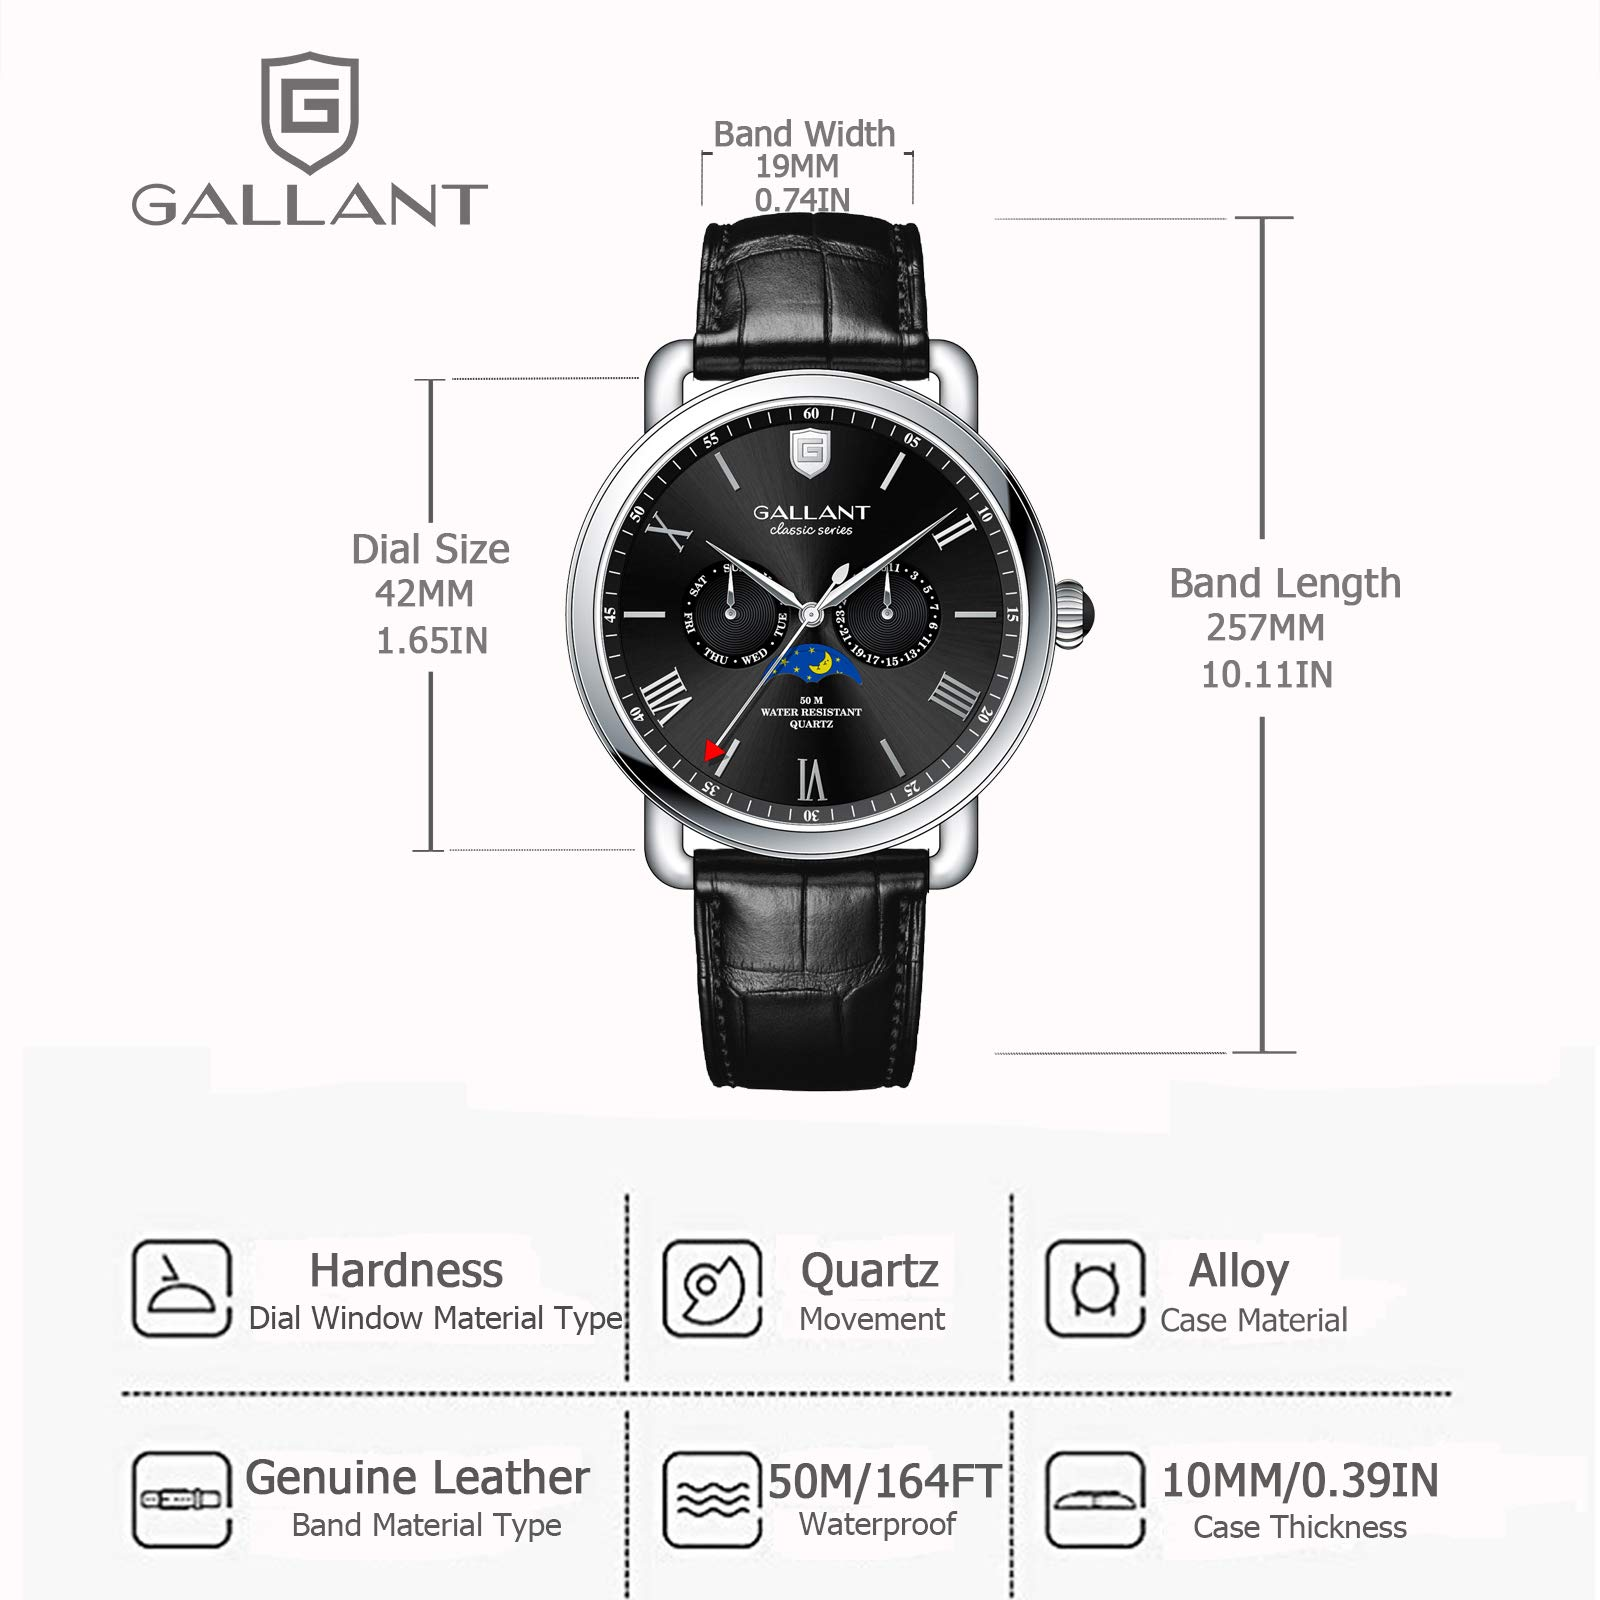 Mens Wrist Watch, GALLANT Analog Quartz Watches Men Wristwatch Leather Band Strap with Date Moon Phrase Date Calendar Waterproof Black Dial Casual Watch for Sports Daily Business